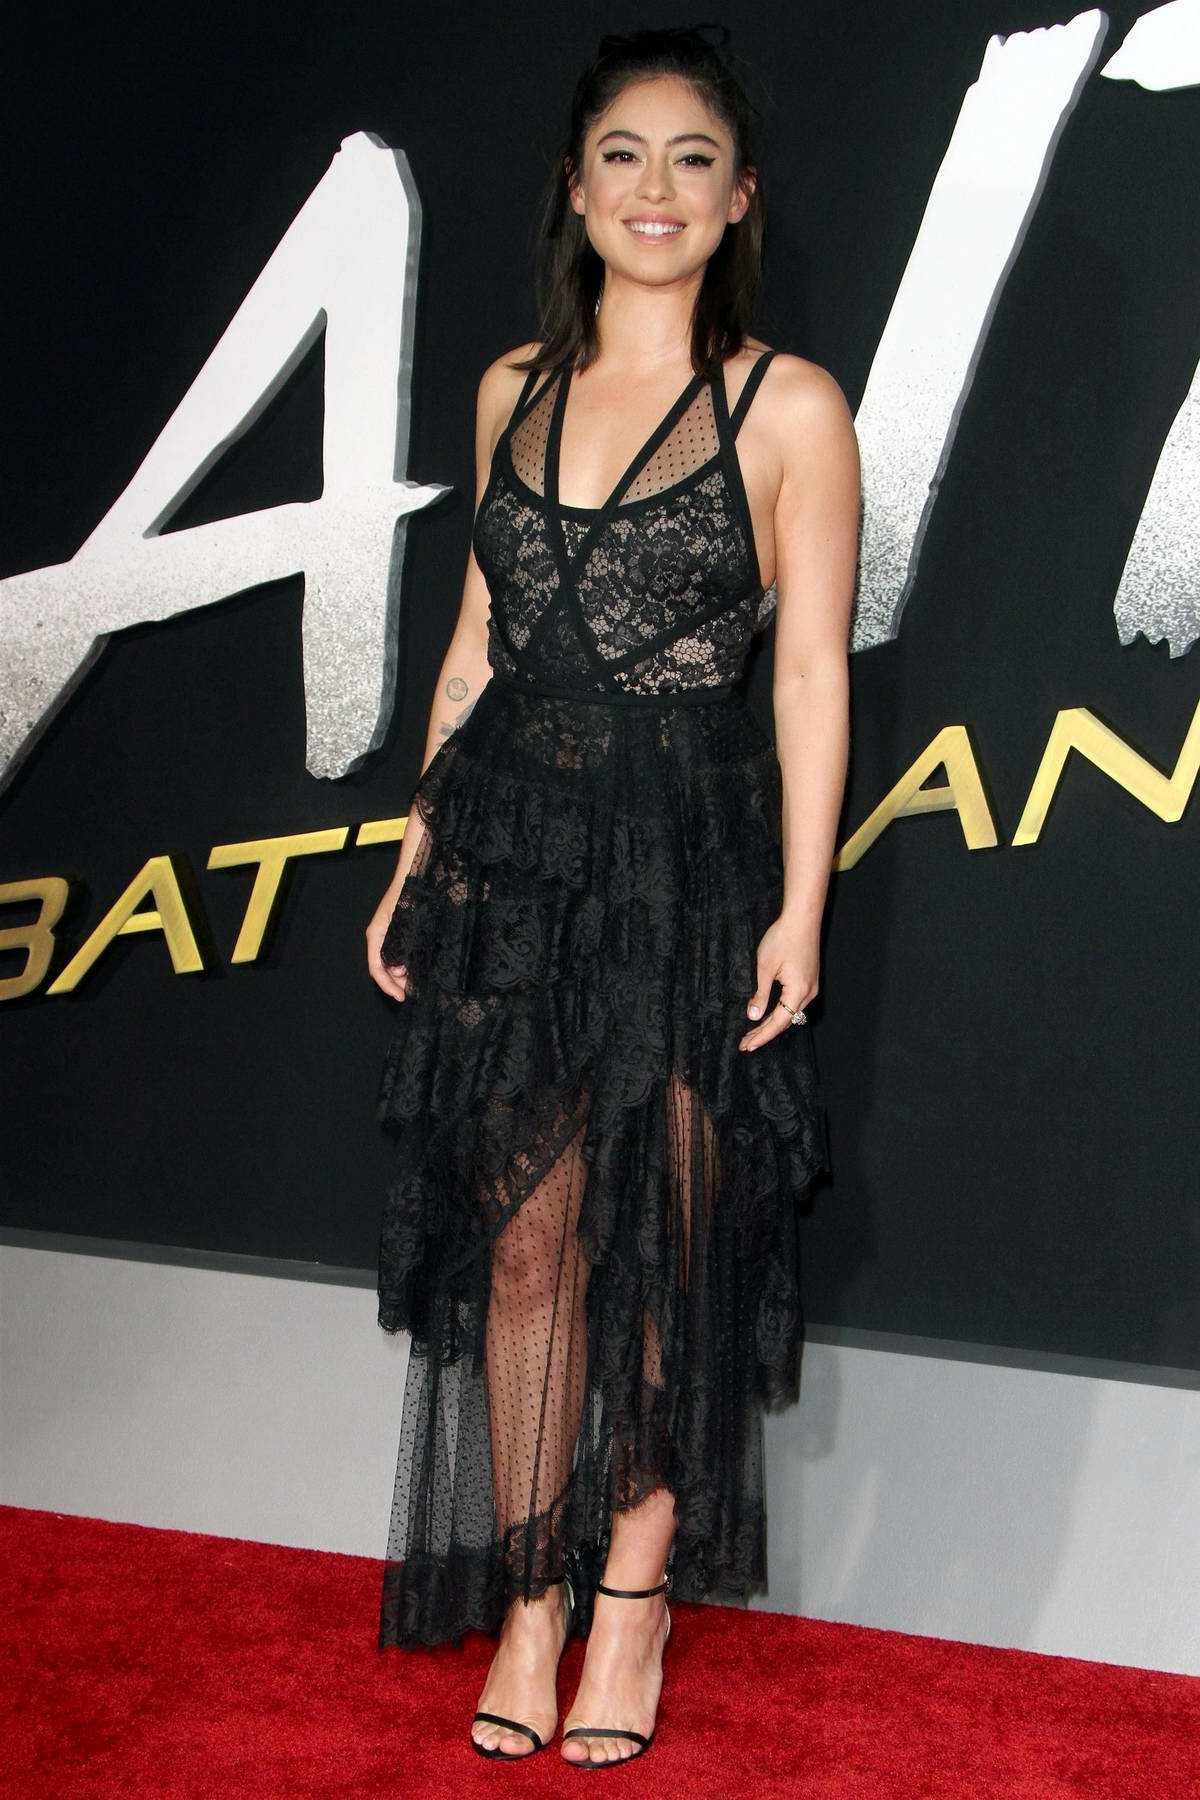 Rosa Salazar attends the World Premiere of 'Alita: Battle Angel' at Westwood Regency Theater in Los Angeles